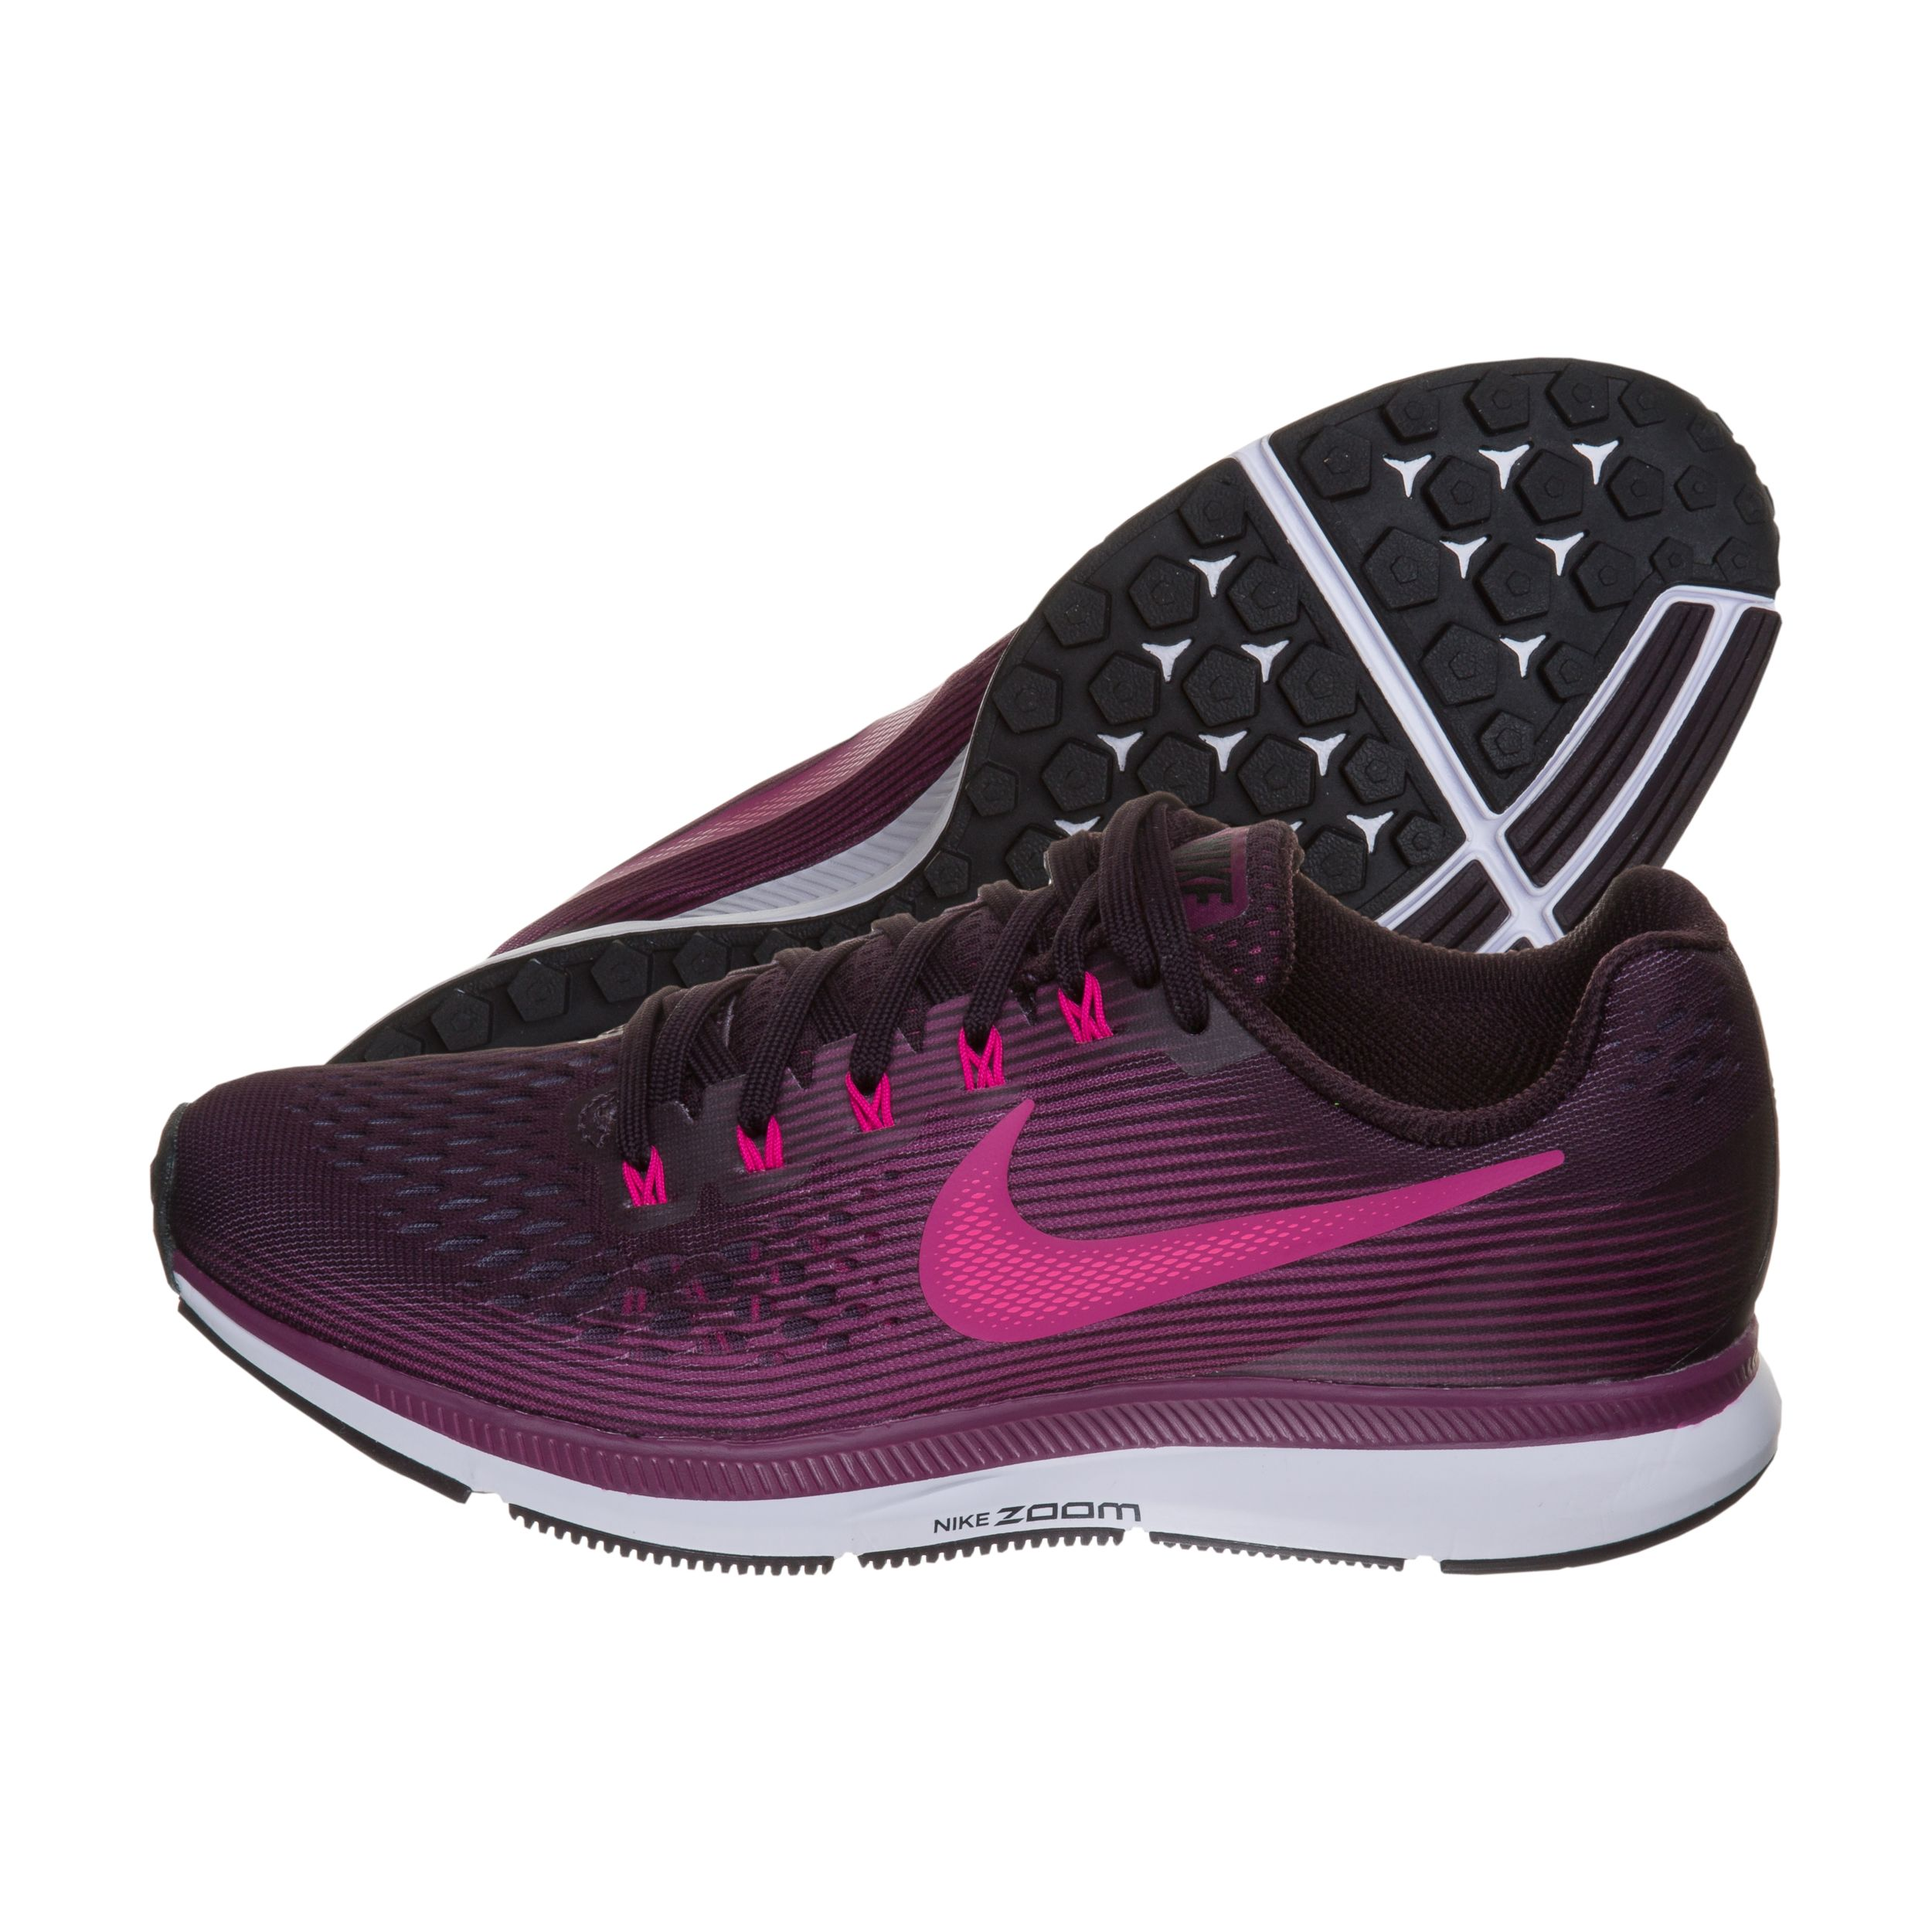 79d229531da4 ... Pink Women s Nike Air Zoom Pegasus 34 Running Shoes Purple (Port Wine  Tea Berry Black WMNS Air Zoom Pegasus 34.